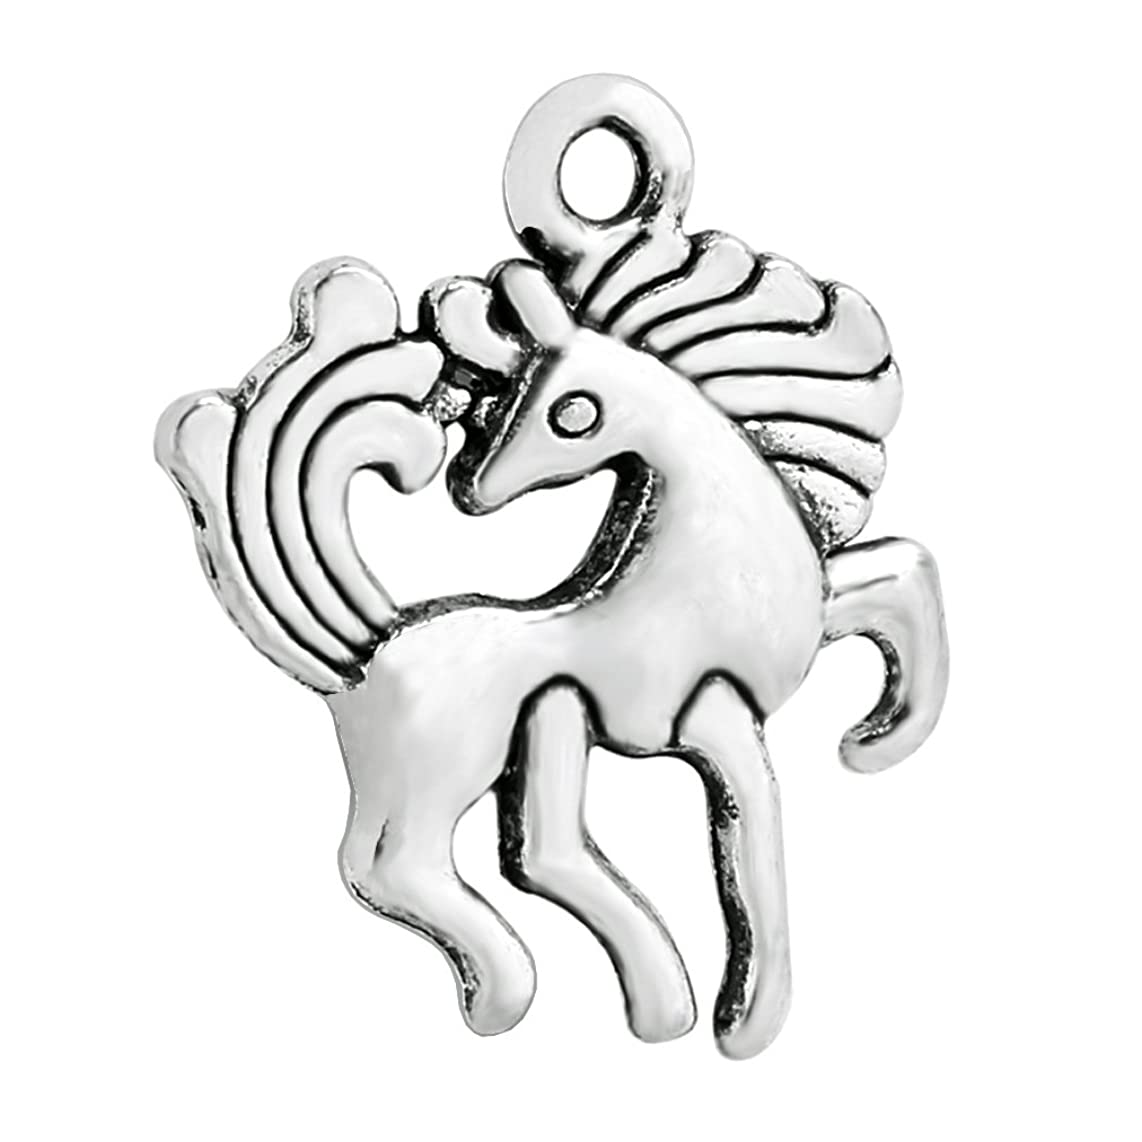 20 Pieces Unicorn Horse Magical Lucky Charm Reversible Findings Jewelry Pendant Necklace Making 19 X 15mm